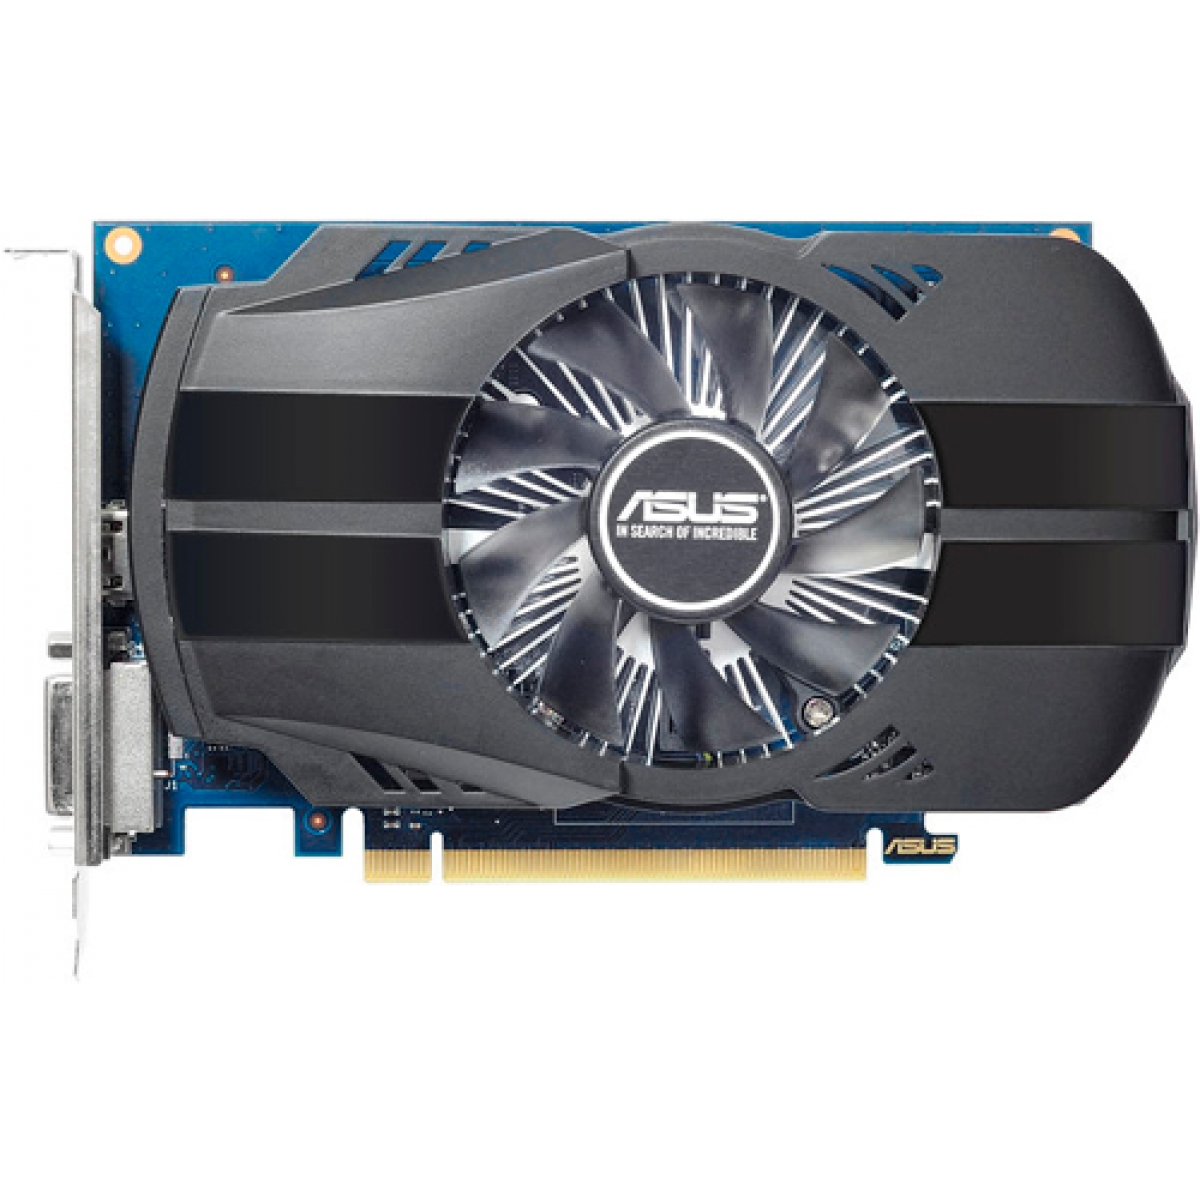 Placa de Vídeo Asus GeForce GT 1030 Phoenix OC, 2GB GDDR5, 64Bit, PH-GT1030-O2G